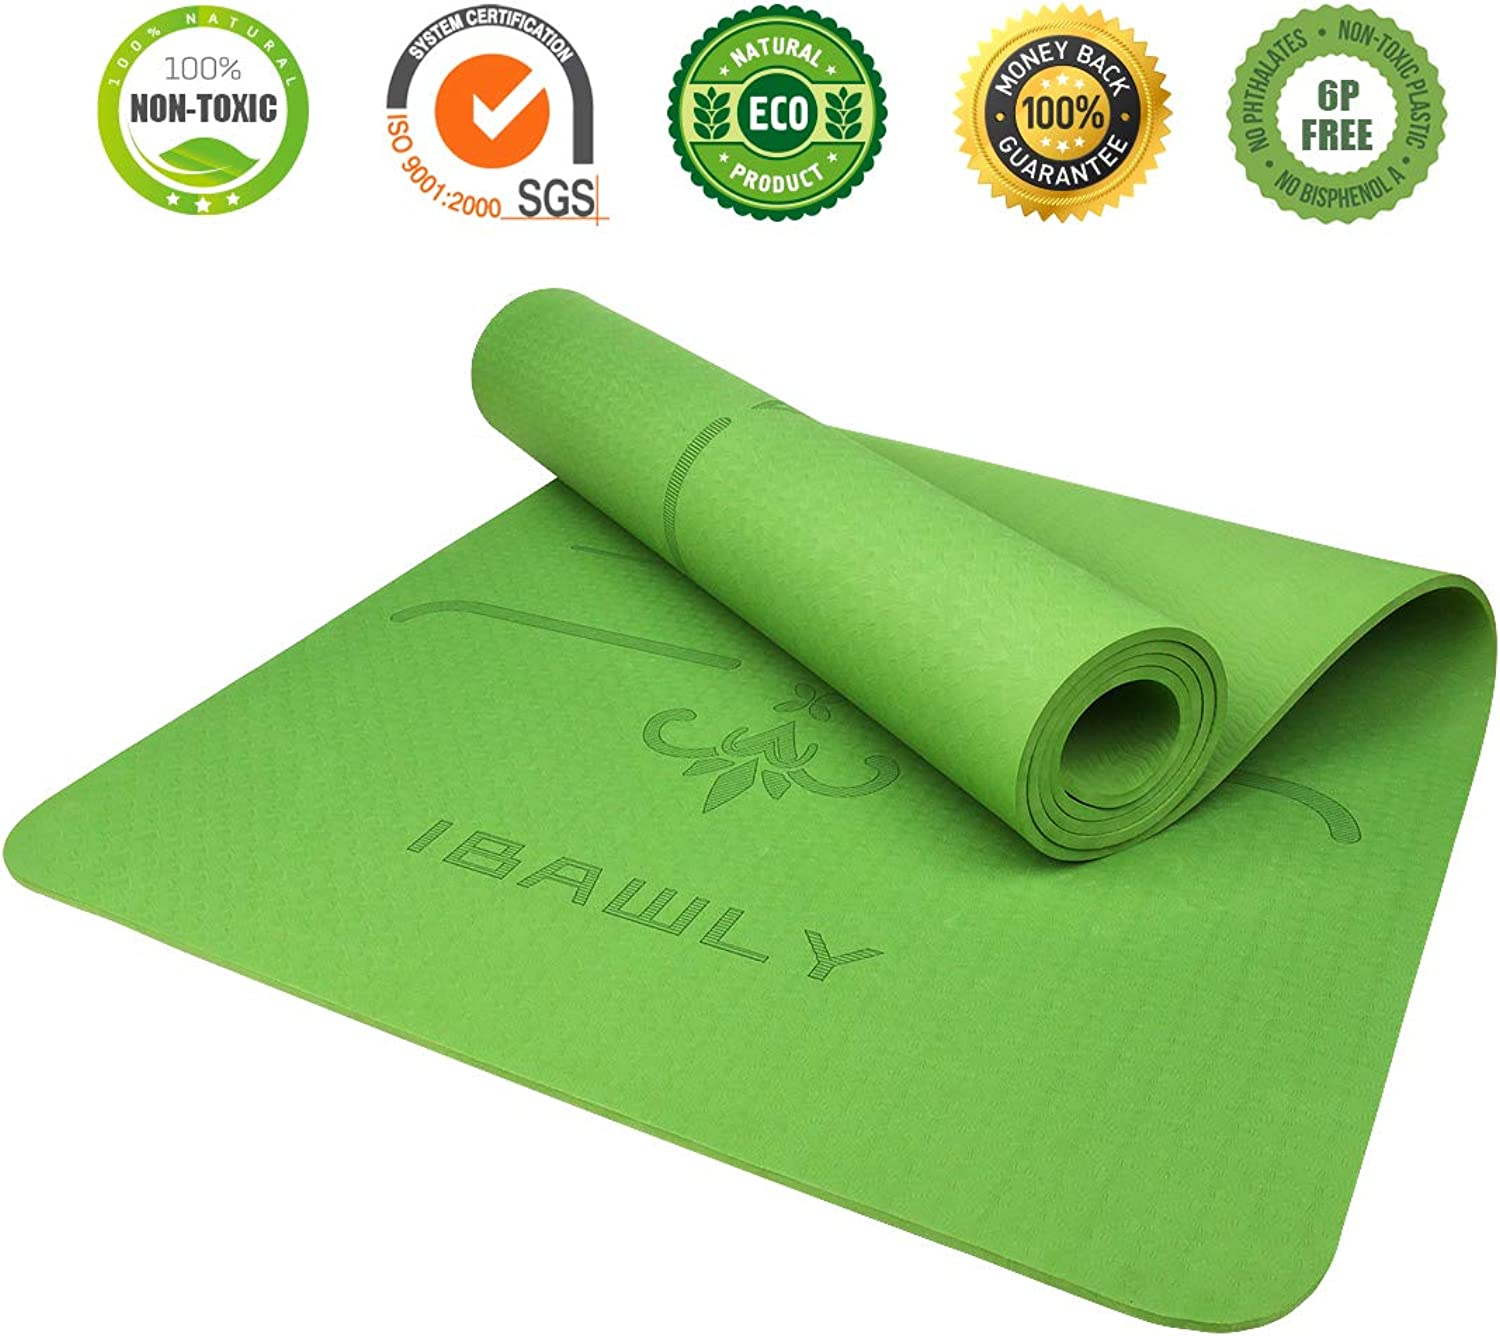 (Leaf Green) - IBAWLY Eco Friendly Non Slip Yoga Mat 1 4'' Extra Thick High Density Body Alignment System Hot Yoga Exercise Mat for Yoga Fitness Workout 72 x 24 with Carrying Strap 6mm